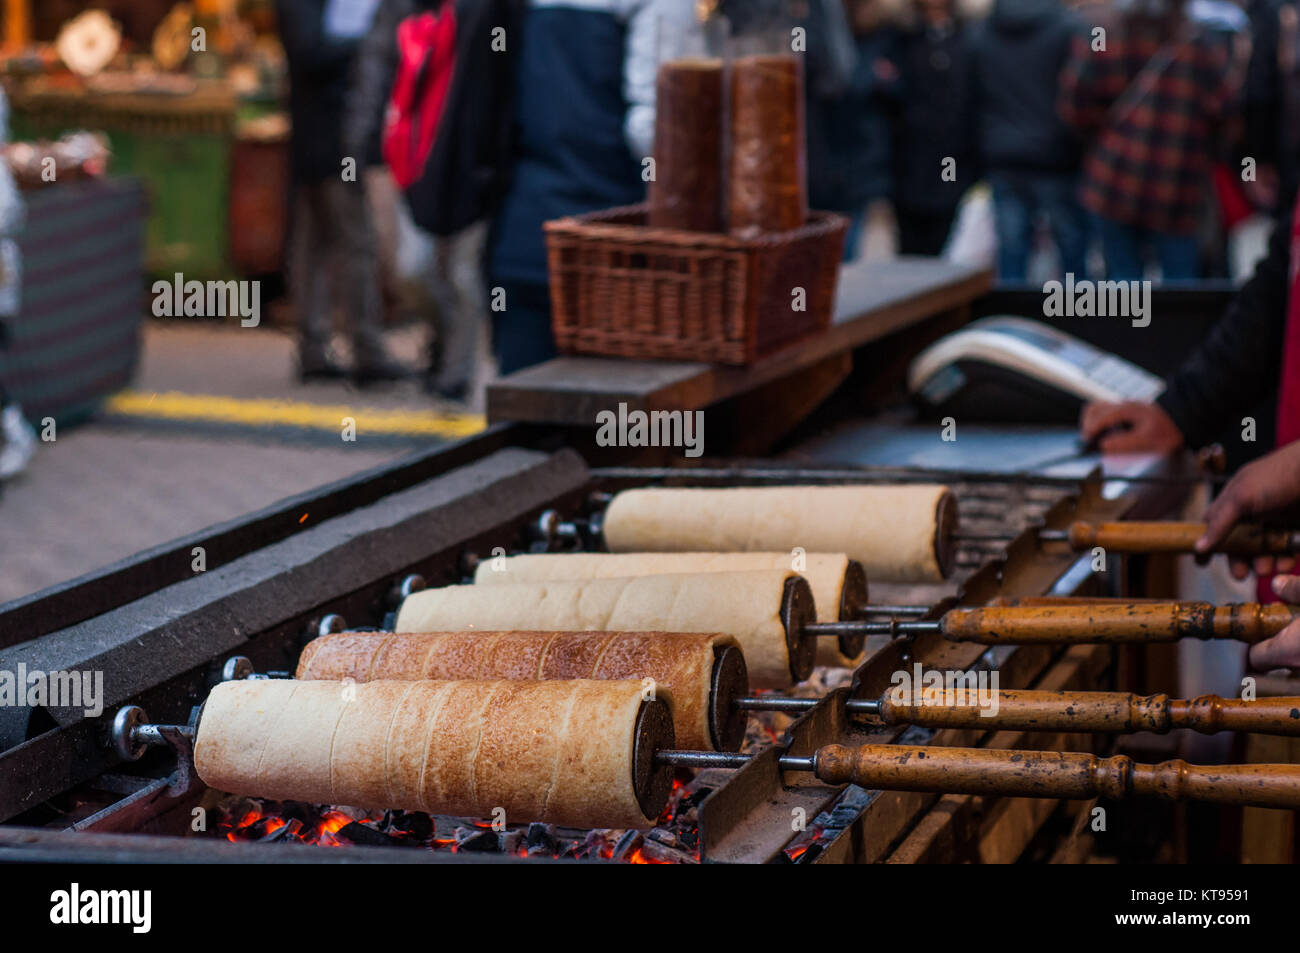 Chimney cakes at the Christmas Market Stock Photo